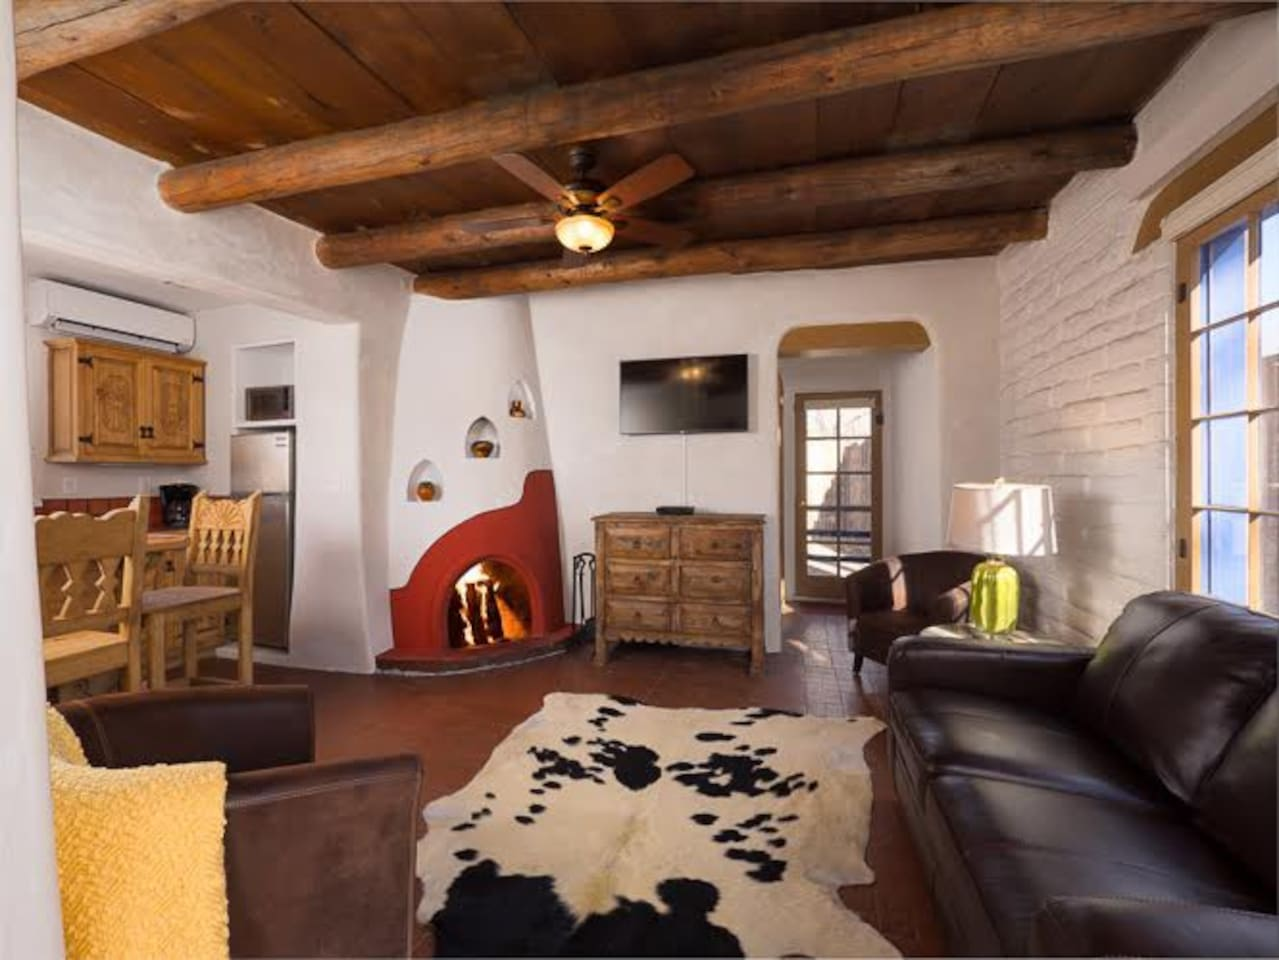 Besos canyon road romance houses for rent in santa fe new living room with sleeper sofa and kiva fireplace solutioingenieria Choice Image